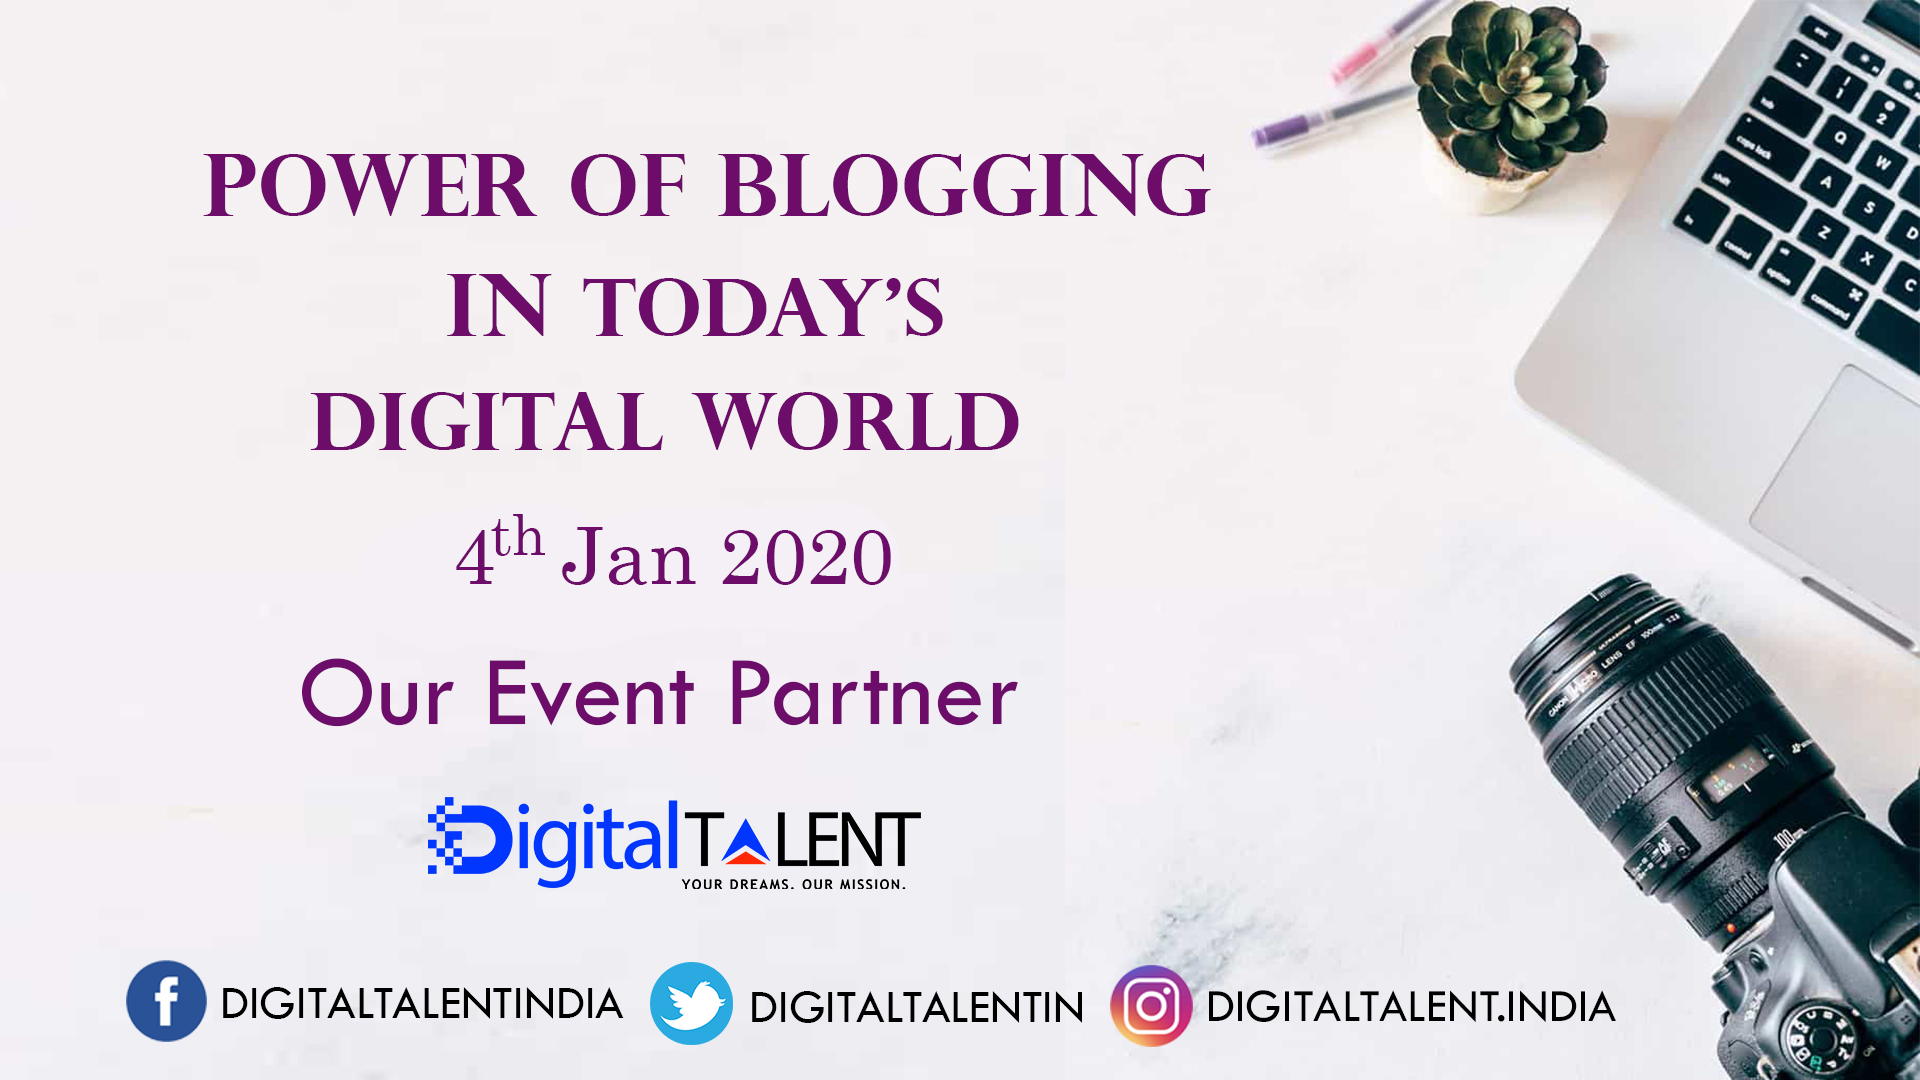 Digital Talent Event